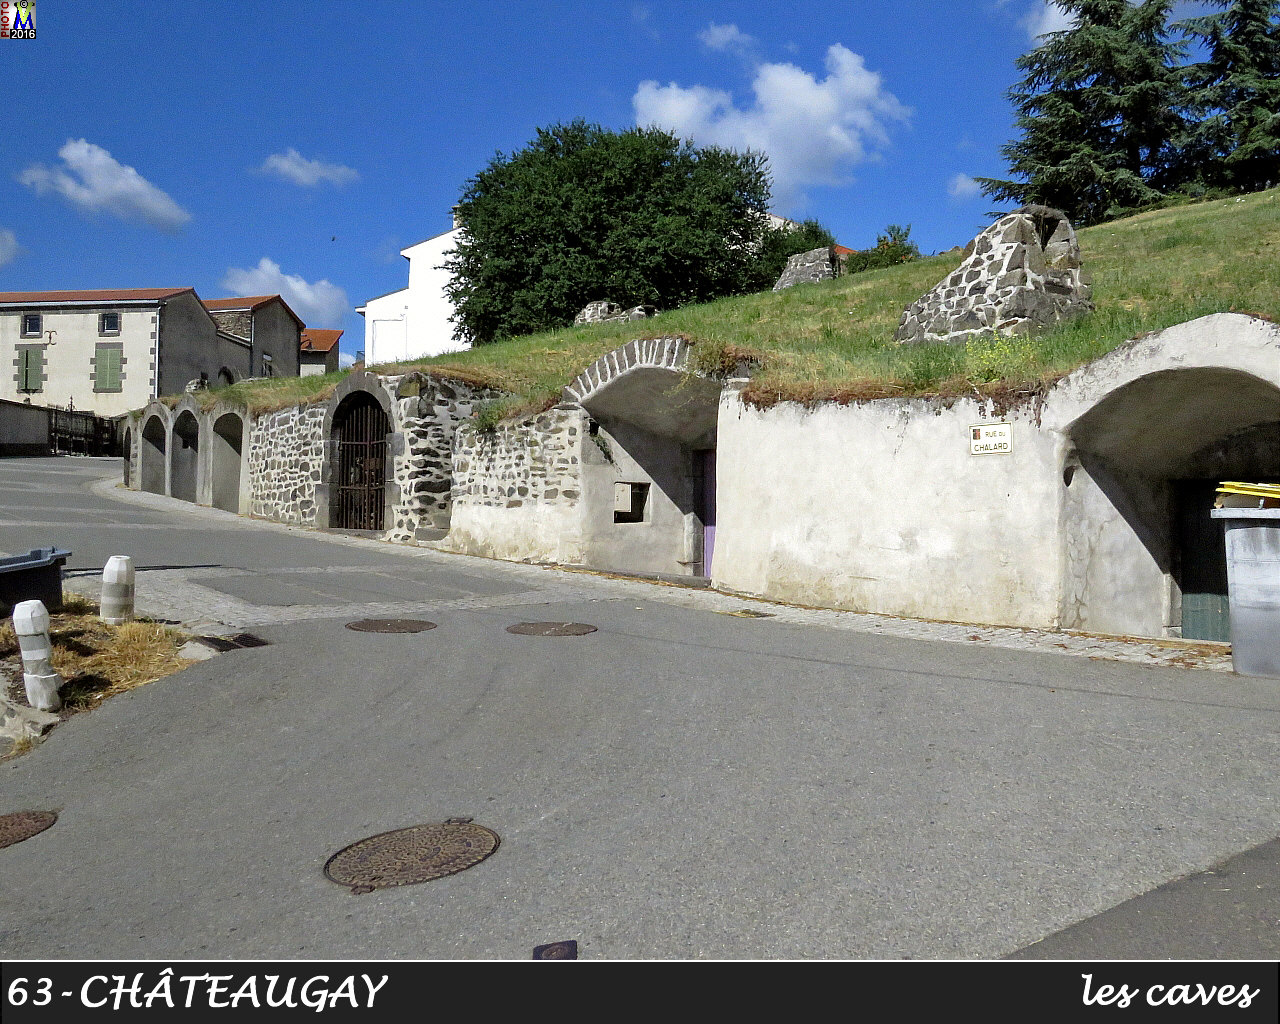 63CHATEAUGAY_caves_100.jpg